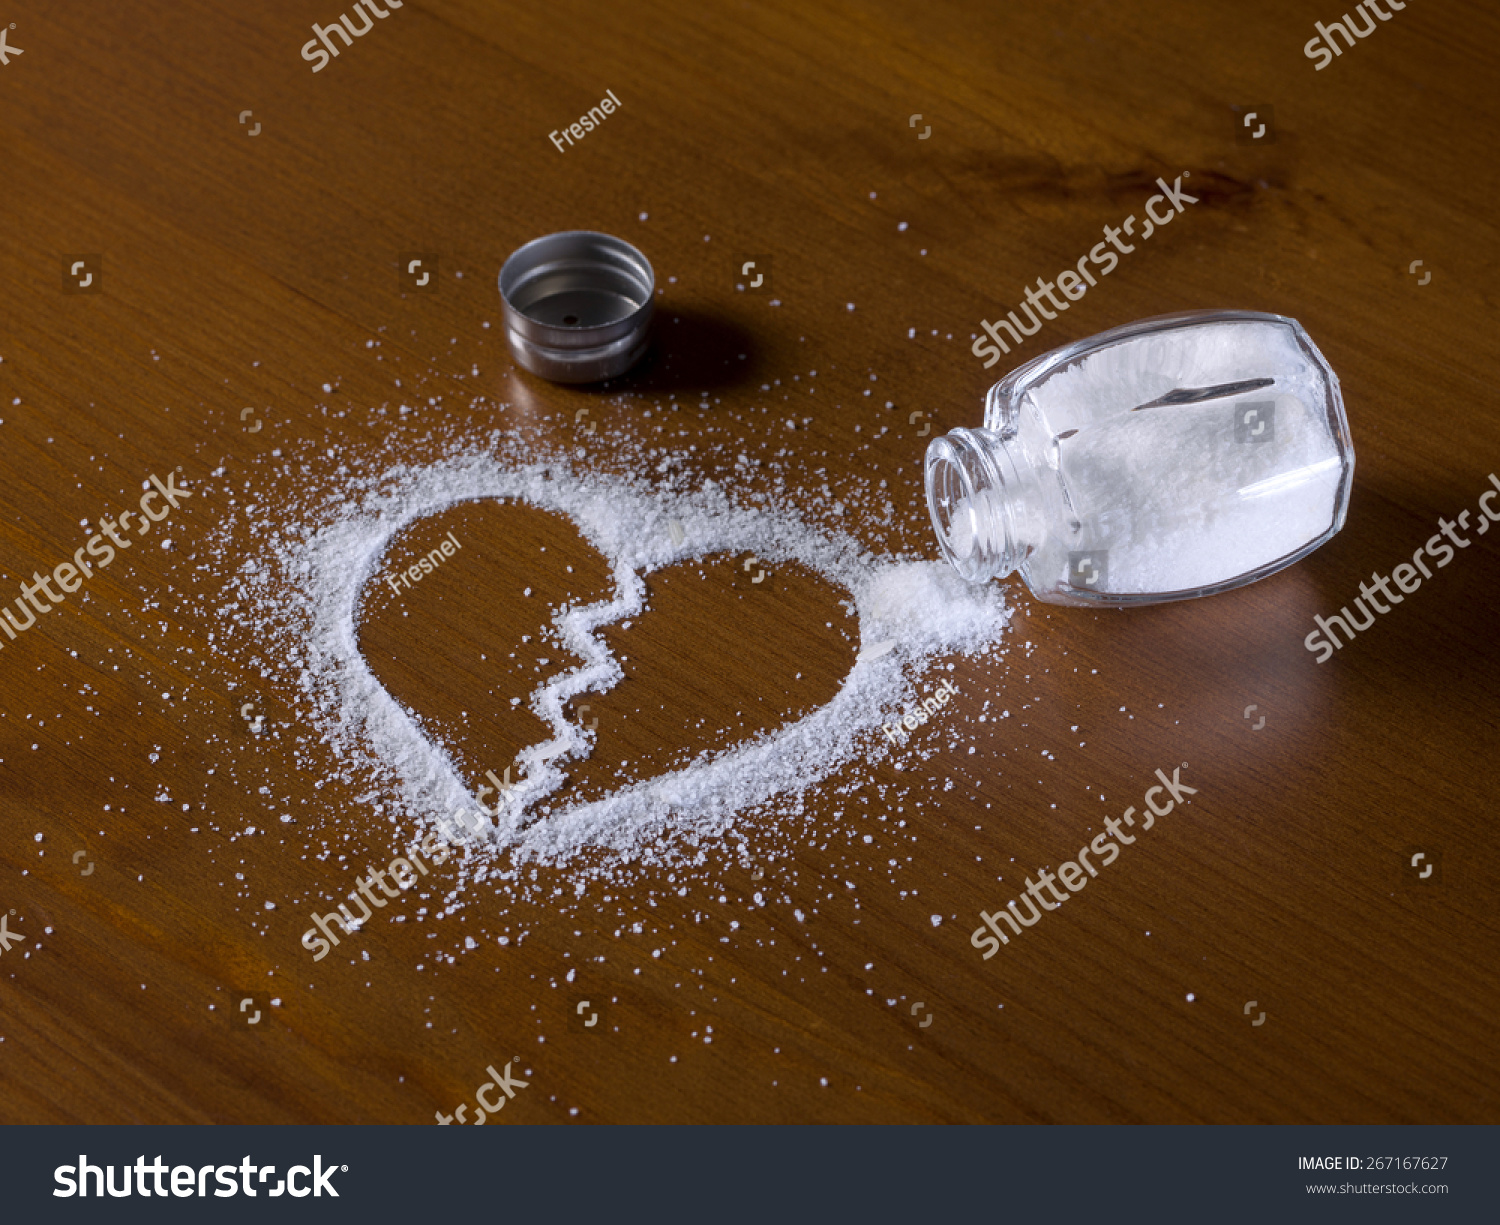 Image result for heart drawn in salt